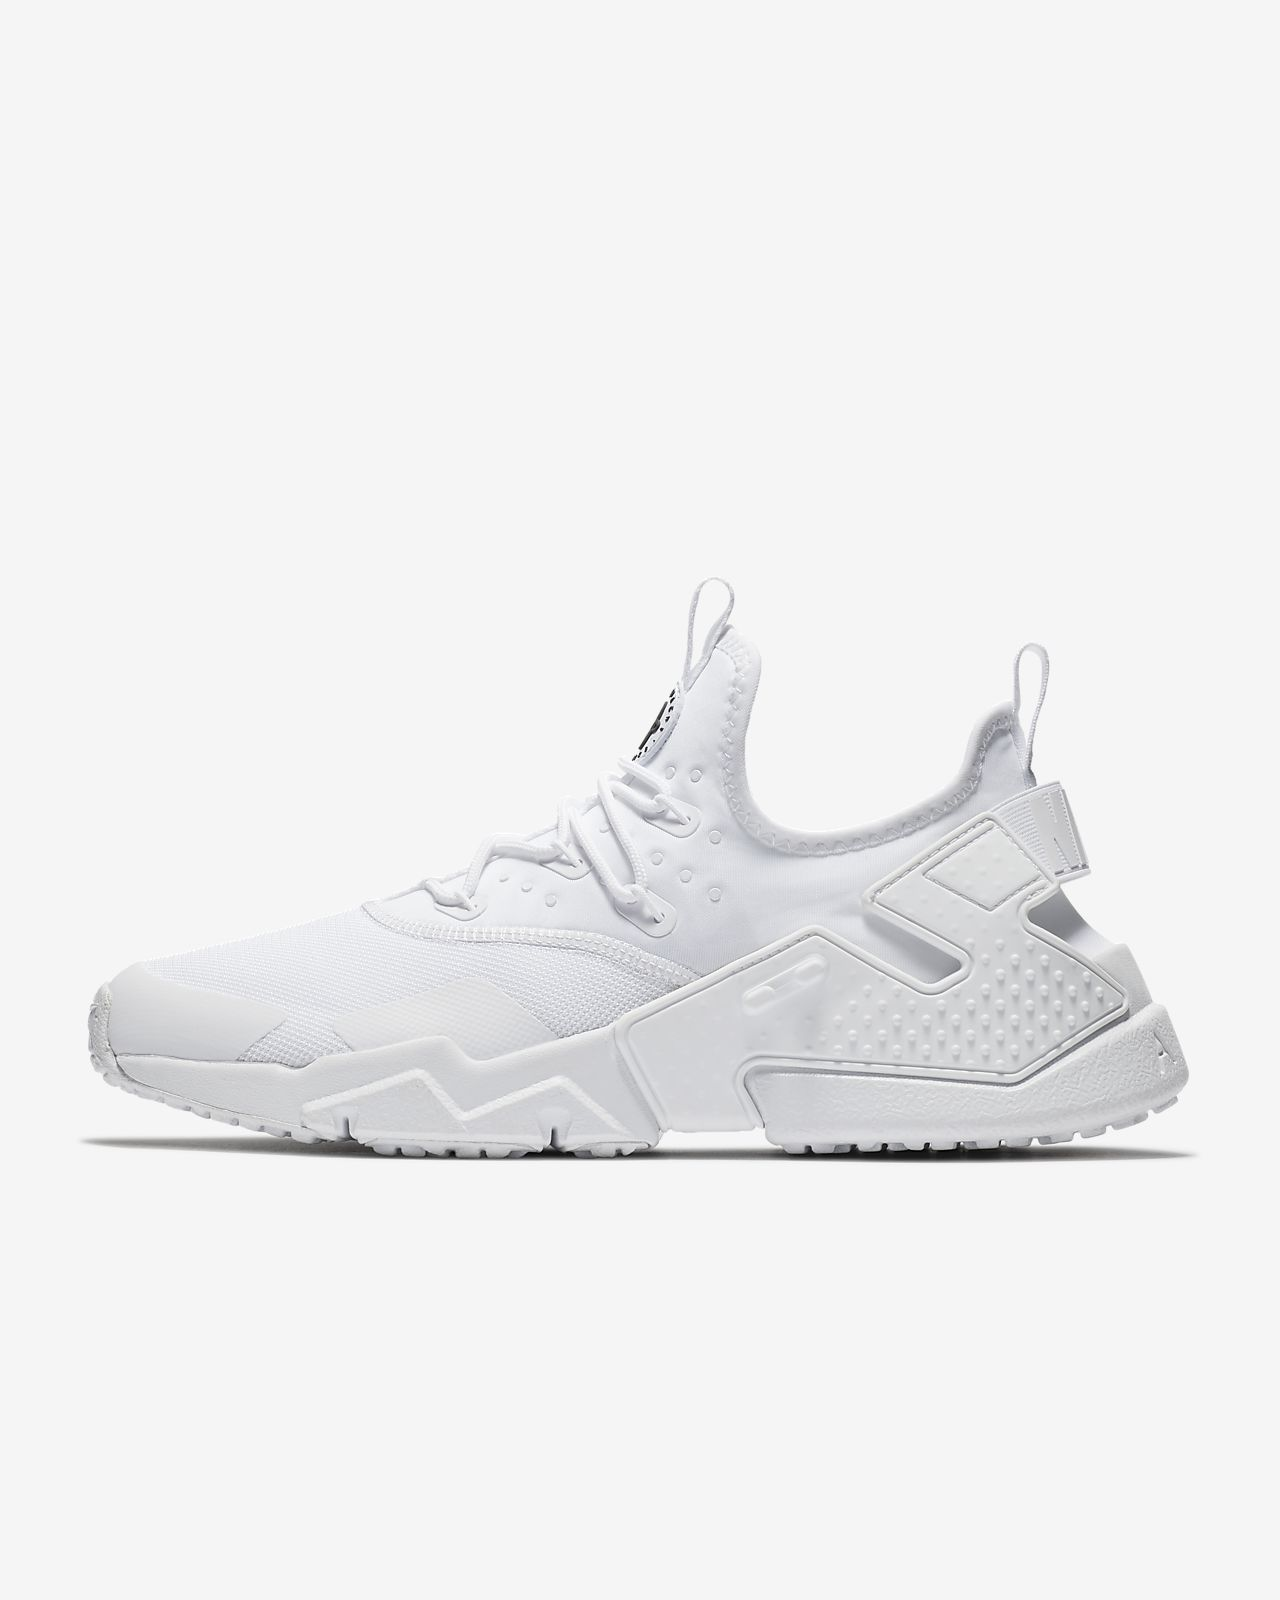 12c40dadc49423 Nike Air Huarache Drift Men s Shoe. Nike.com